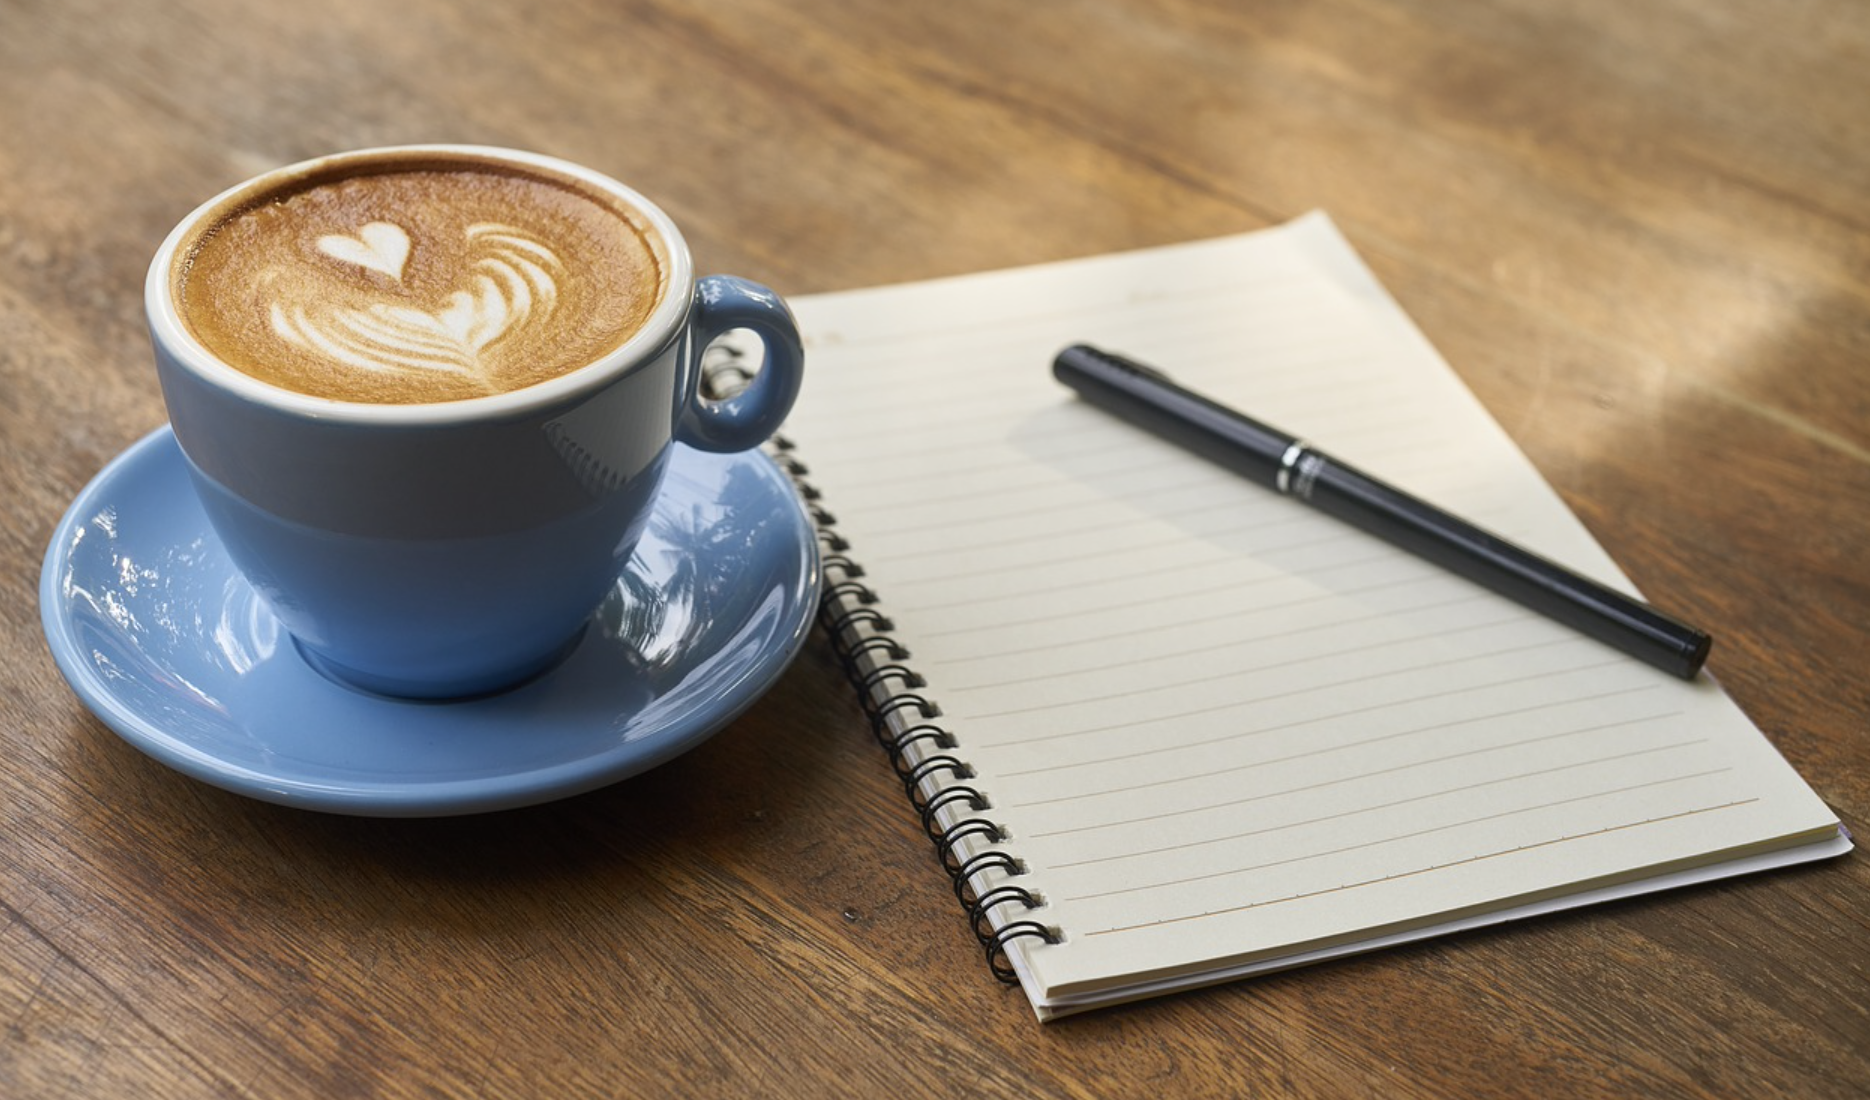 Learning Goals and Coffee: The Importance of Clear Objectives to Understand How to Achieve Any Goal